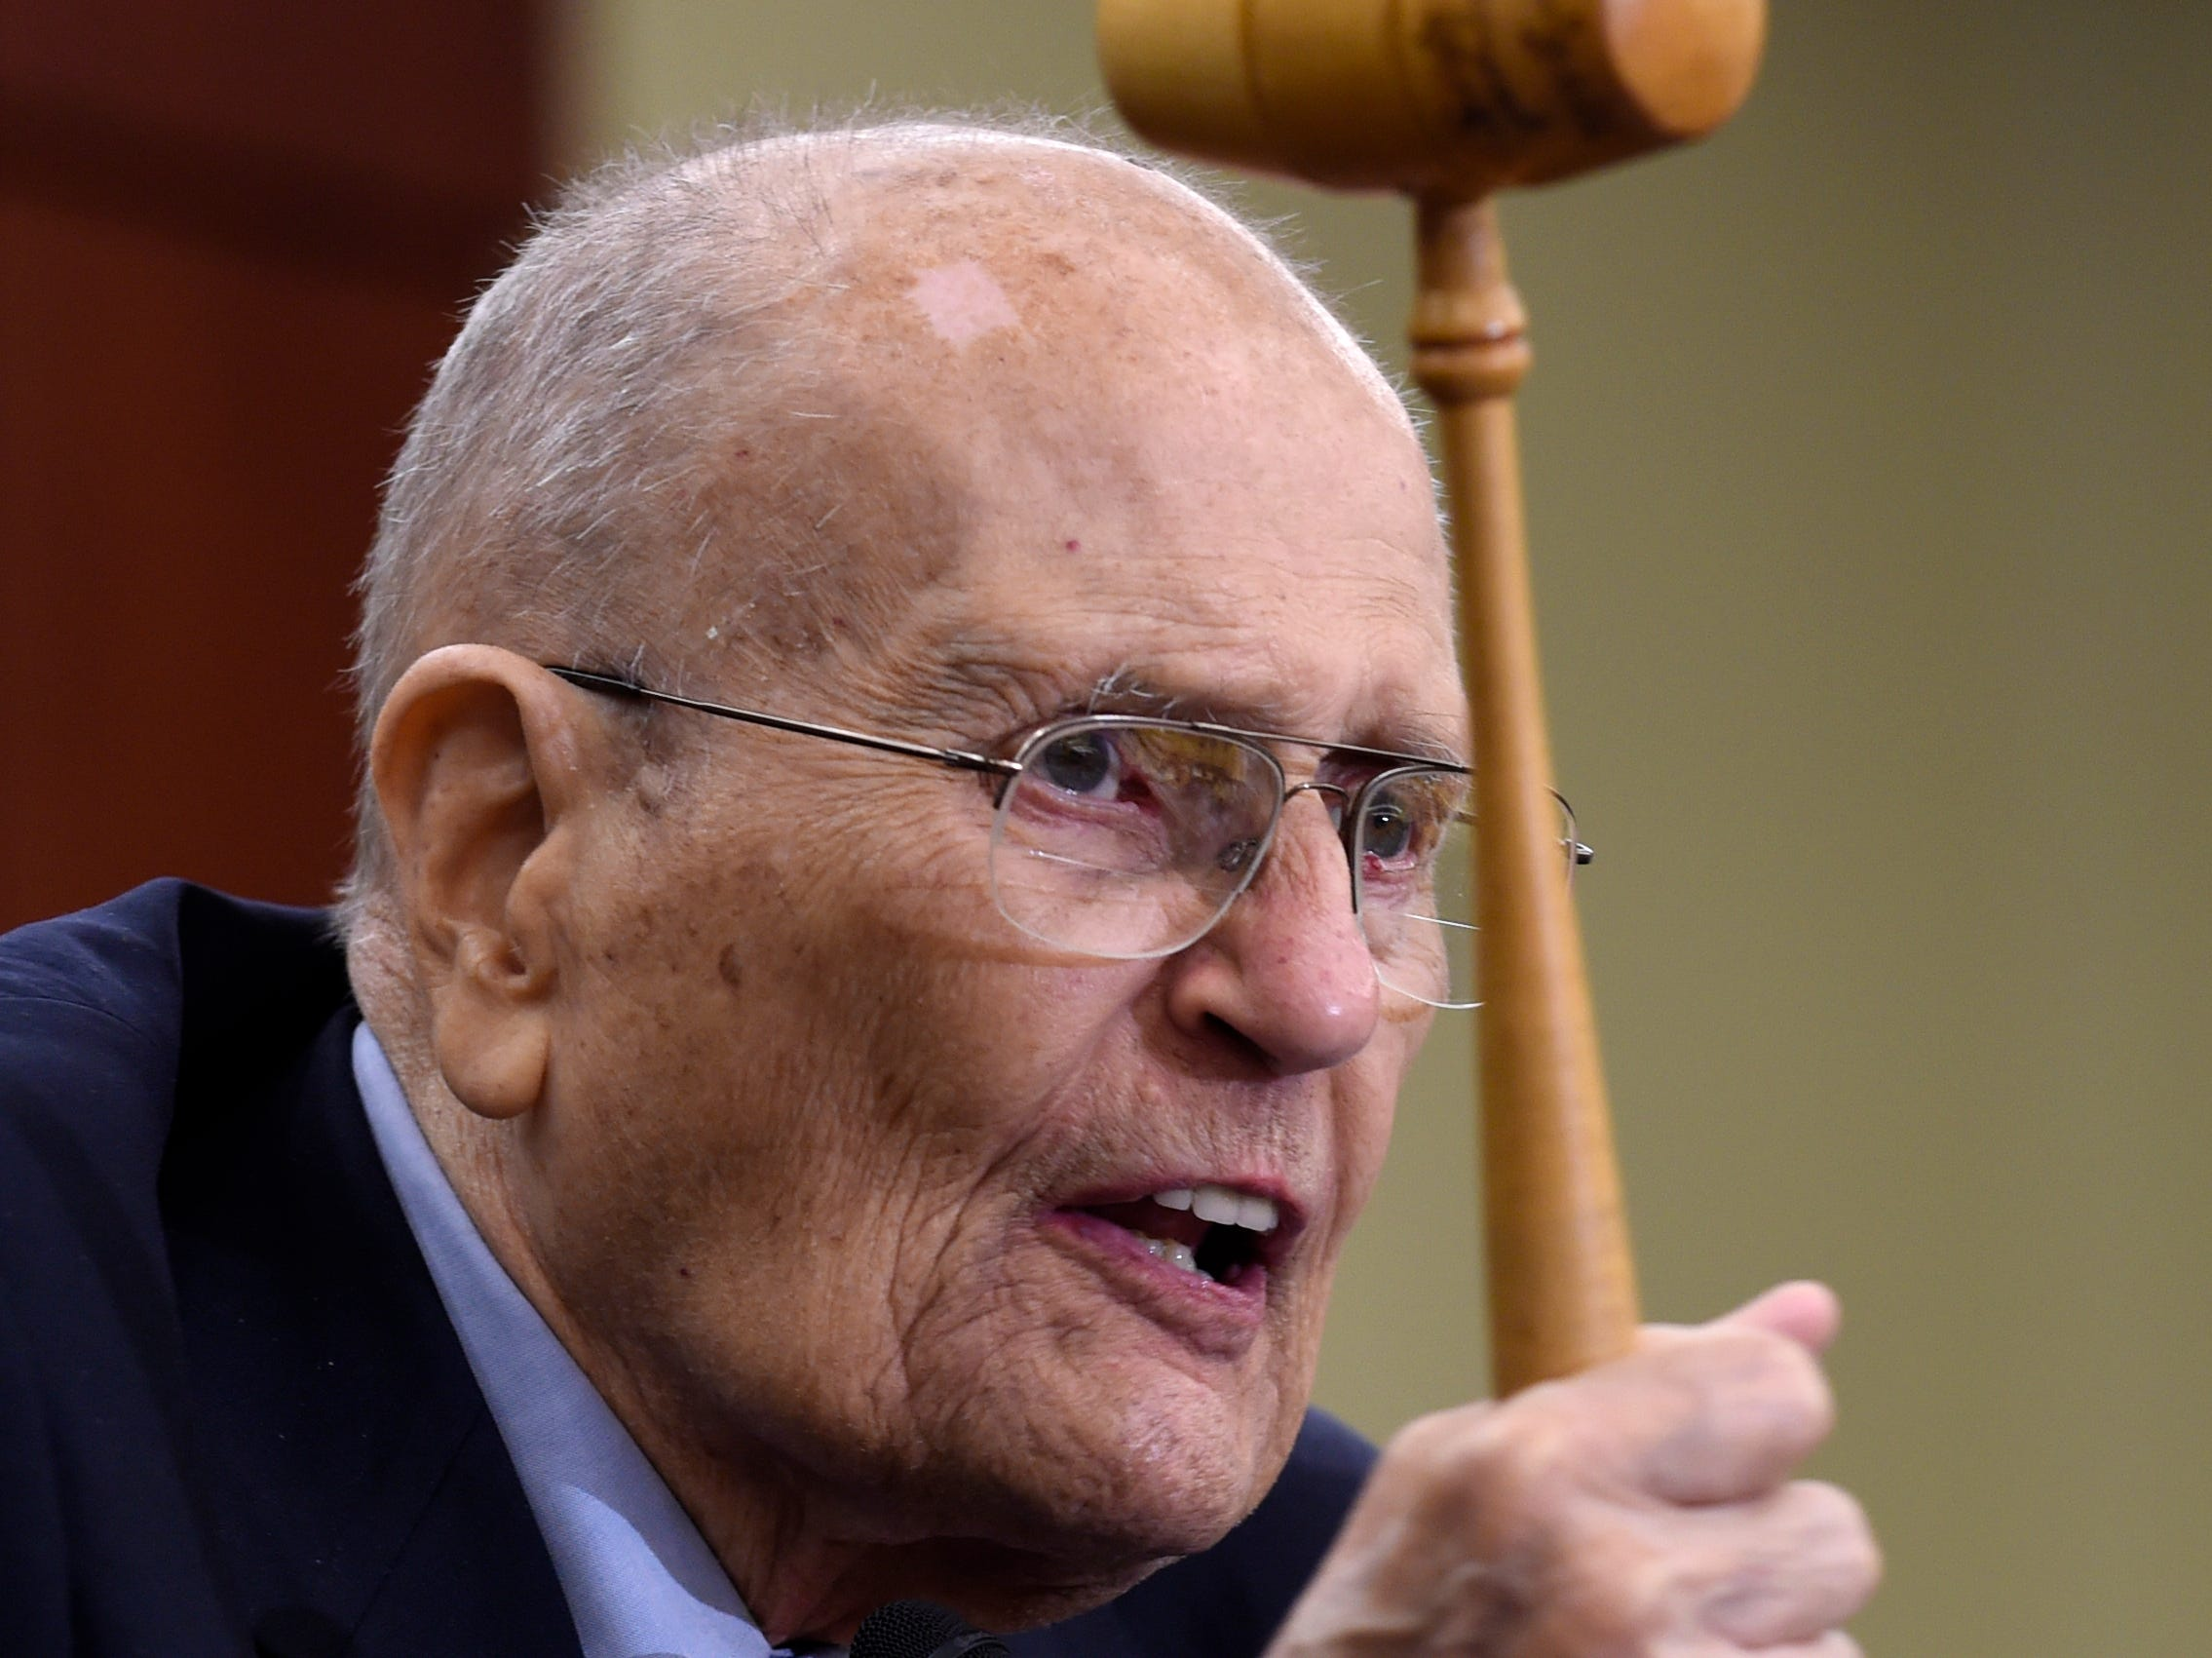 Former Michigan Rep. John Dingell holds up the gavel he used 50 years ago when Medicare legislation was passed, as he speaks at an event marking the 50th anniversary of Medicare and Medicaid,  July 29, 2015, on Capitol Hill.